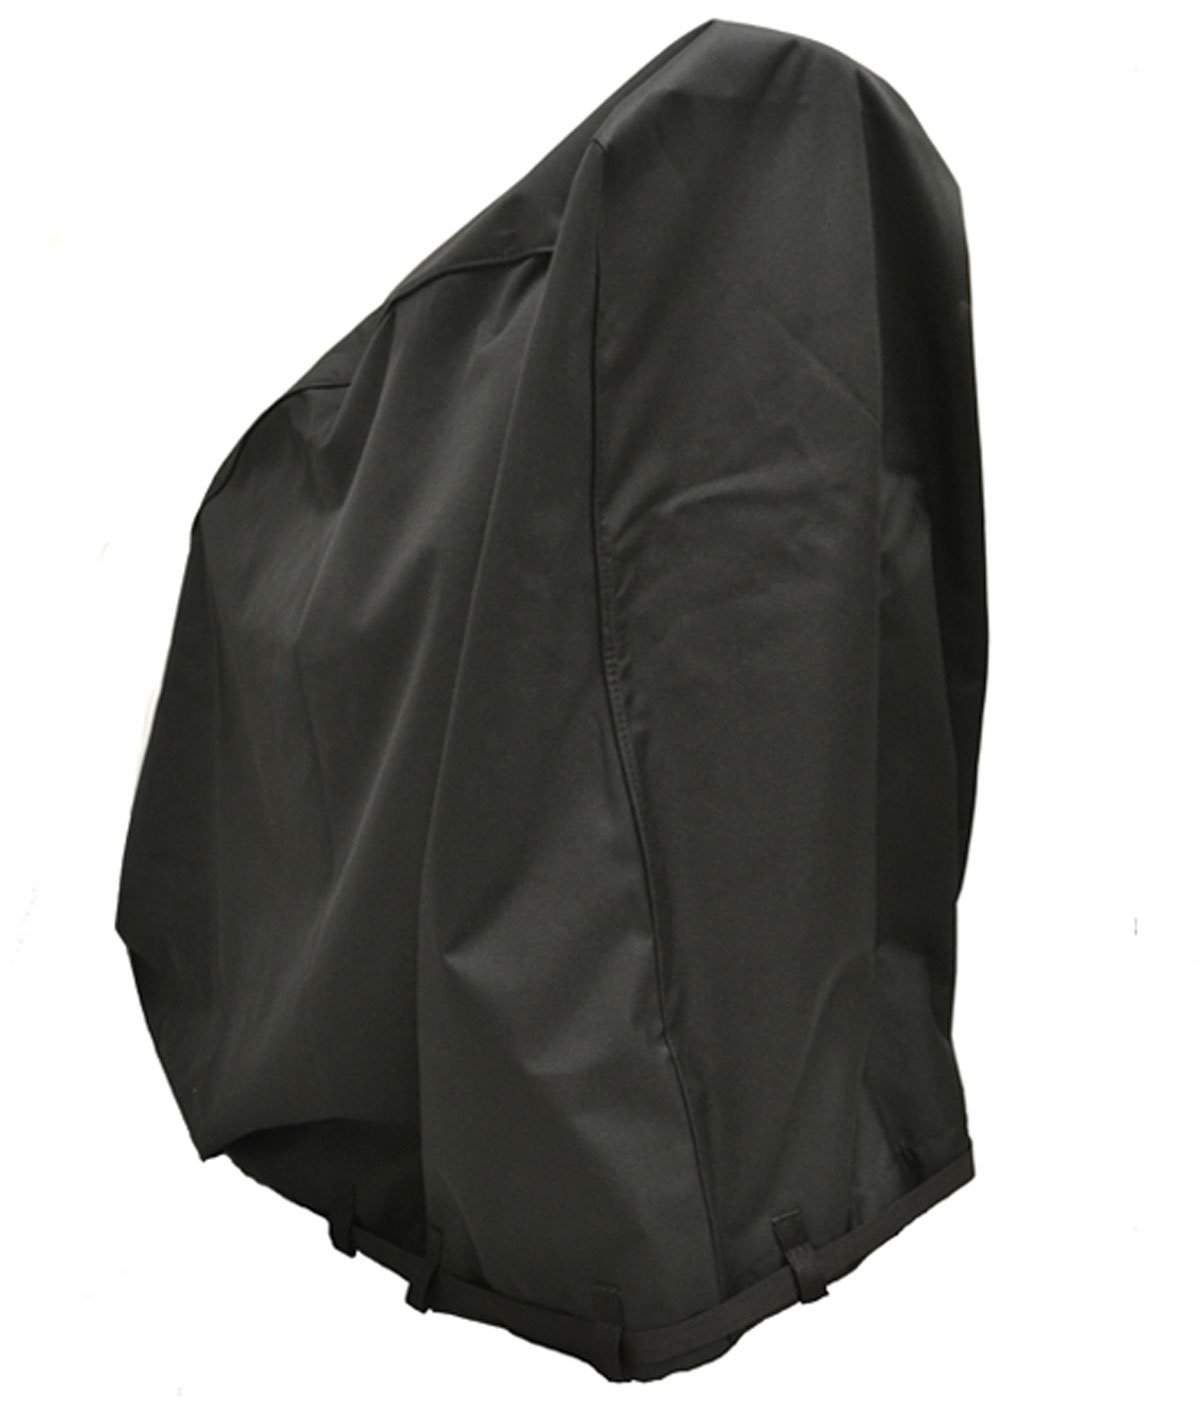 Powerchair Cover, Heavy Duty - Large Cover, 1 each